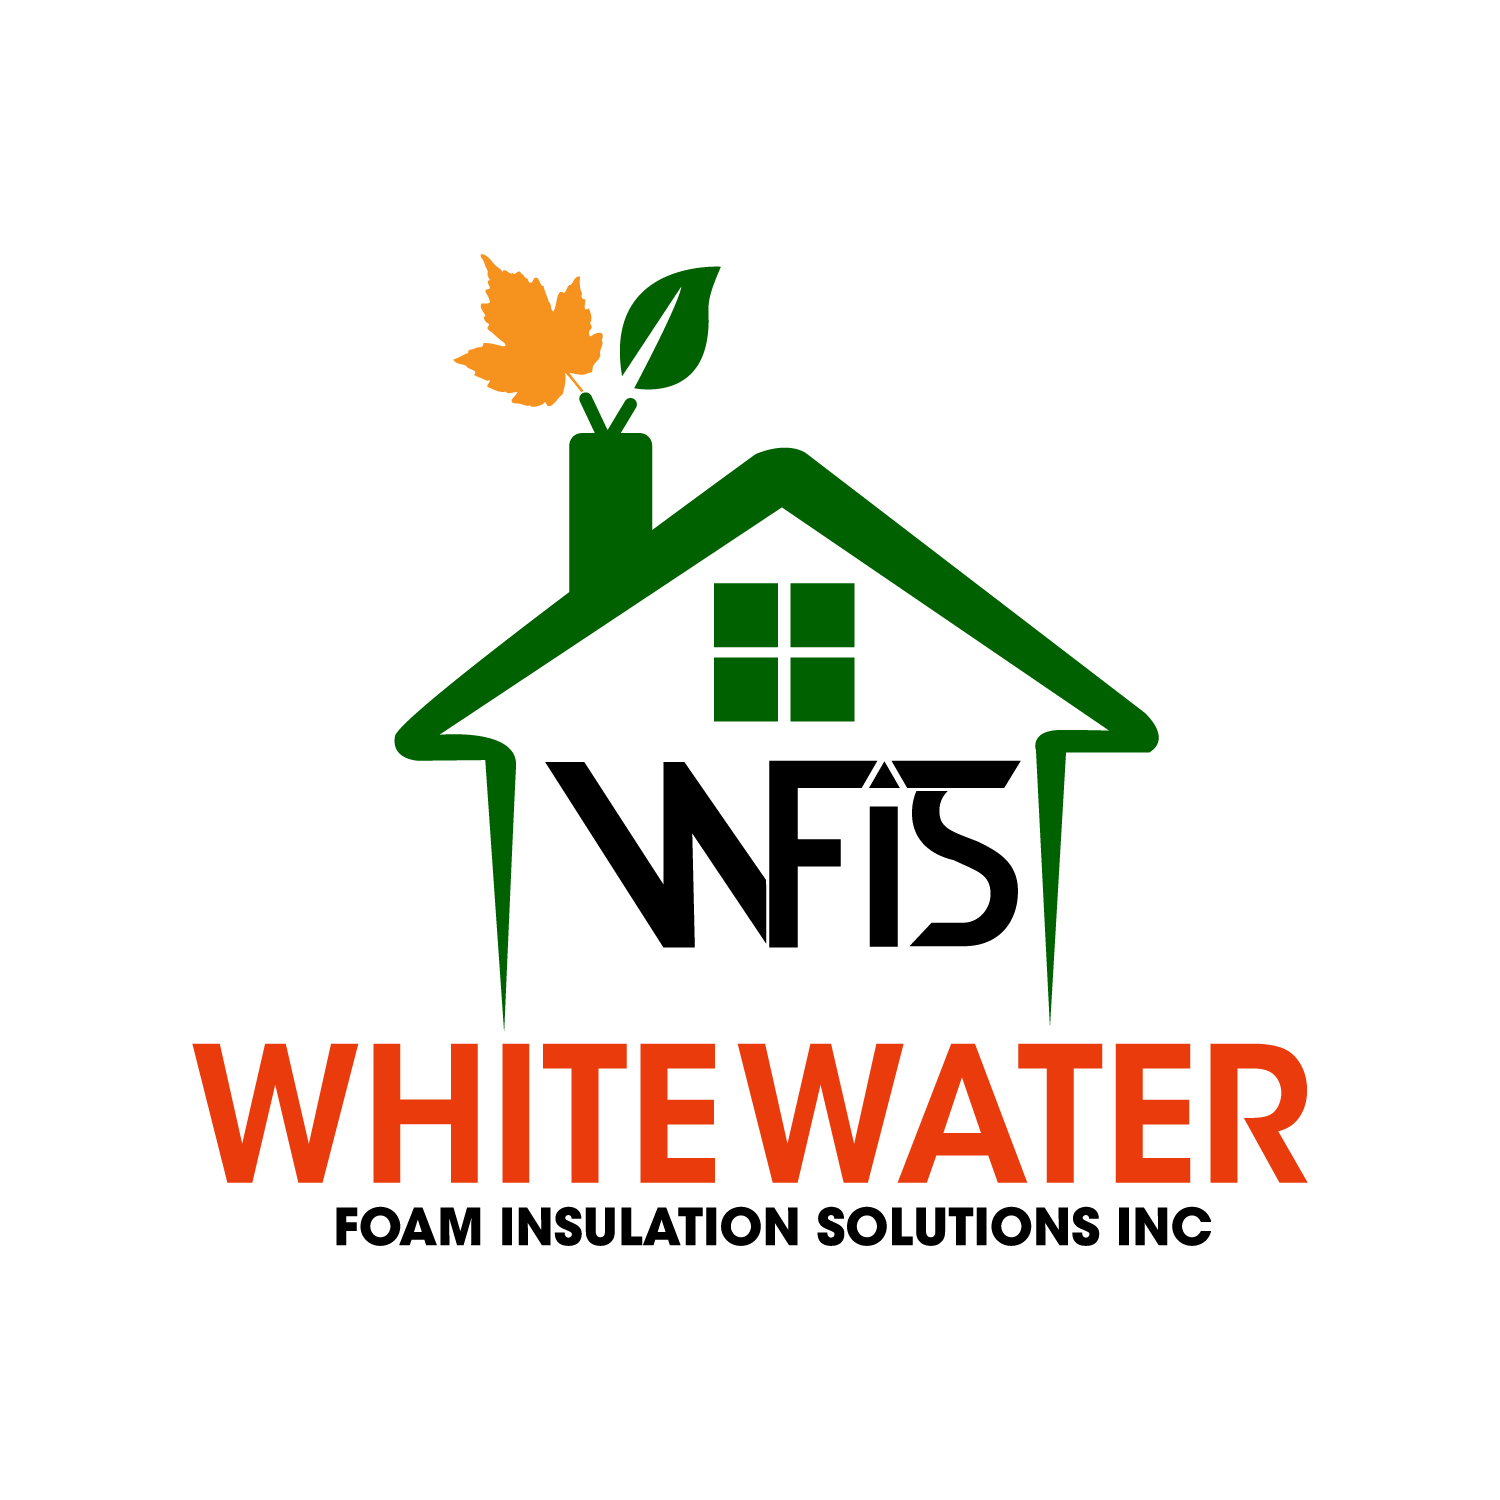 whitewater-logo.jpg